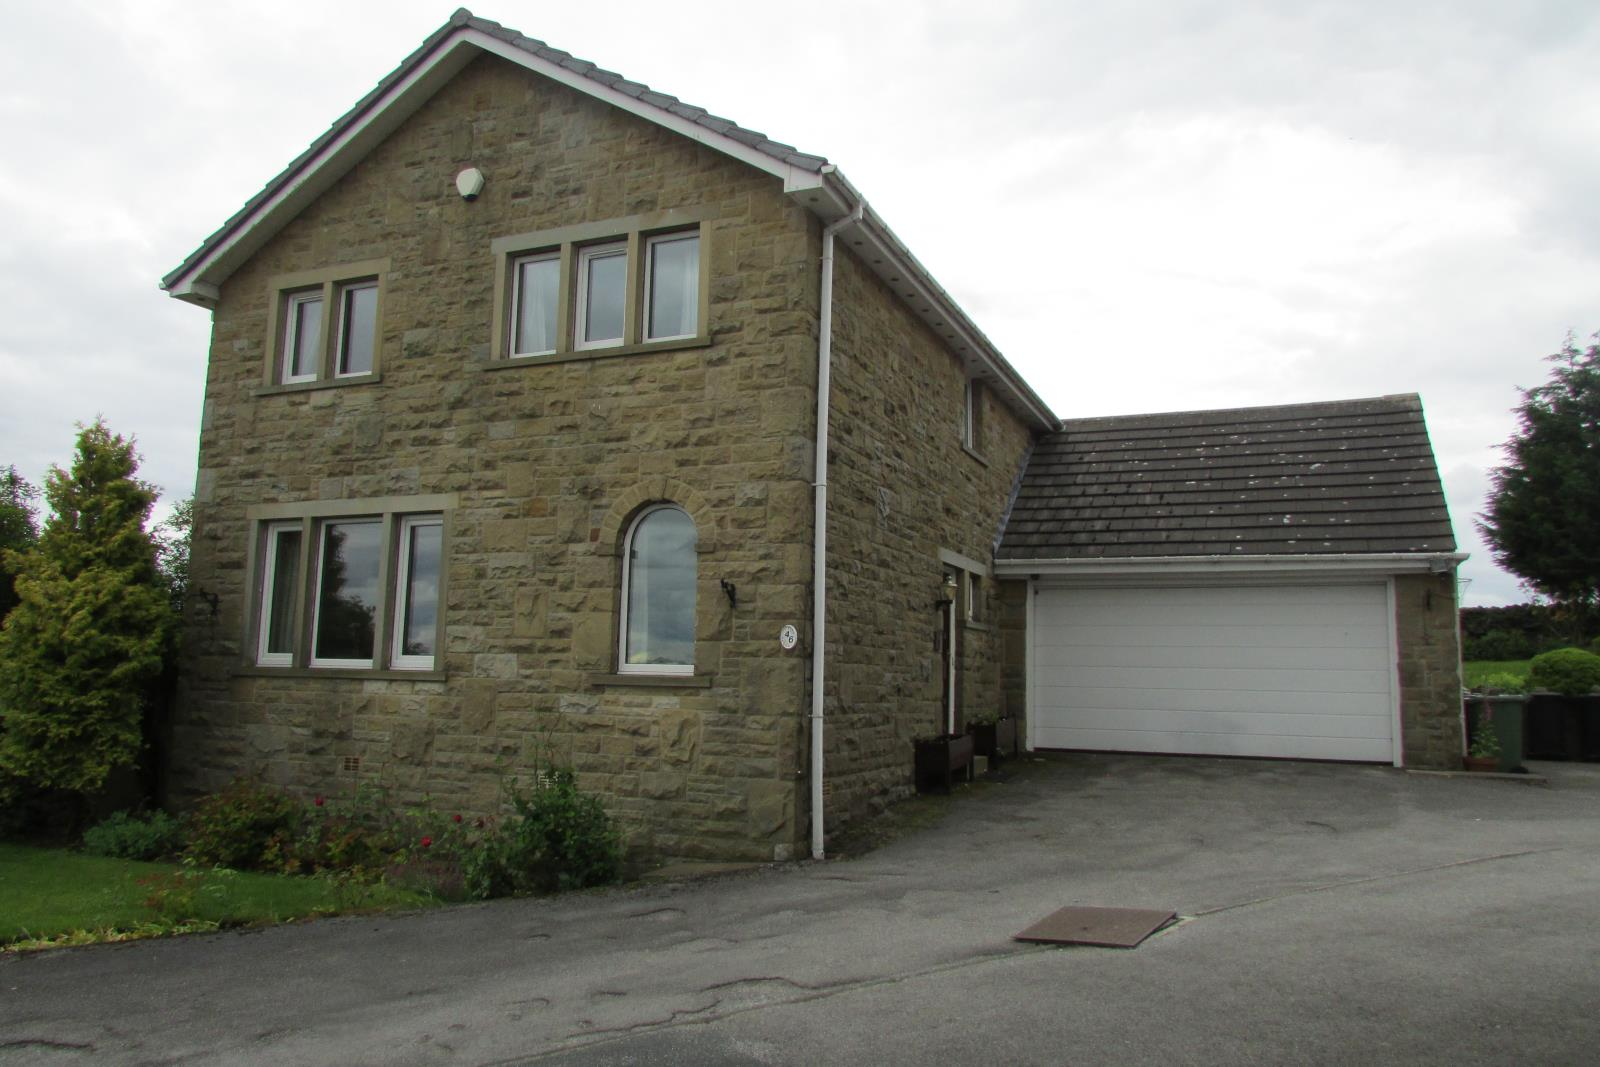 Town End Avenue, Wooldale, Holmfirth, HD9